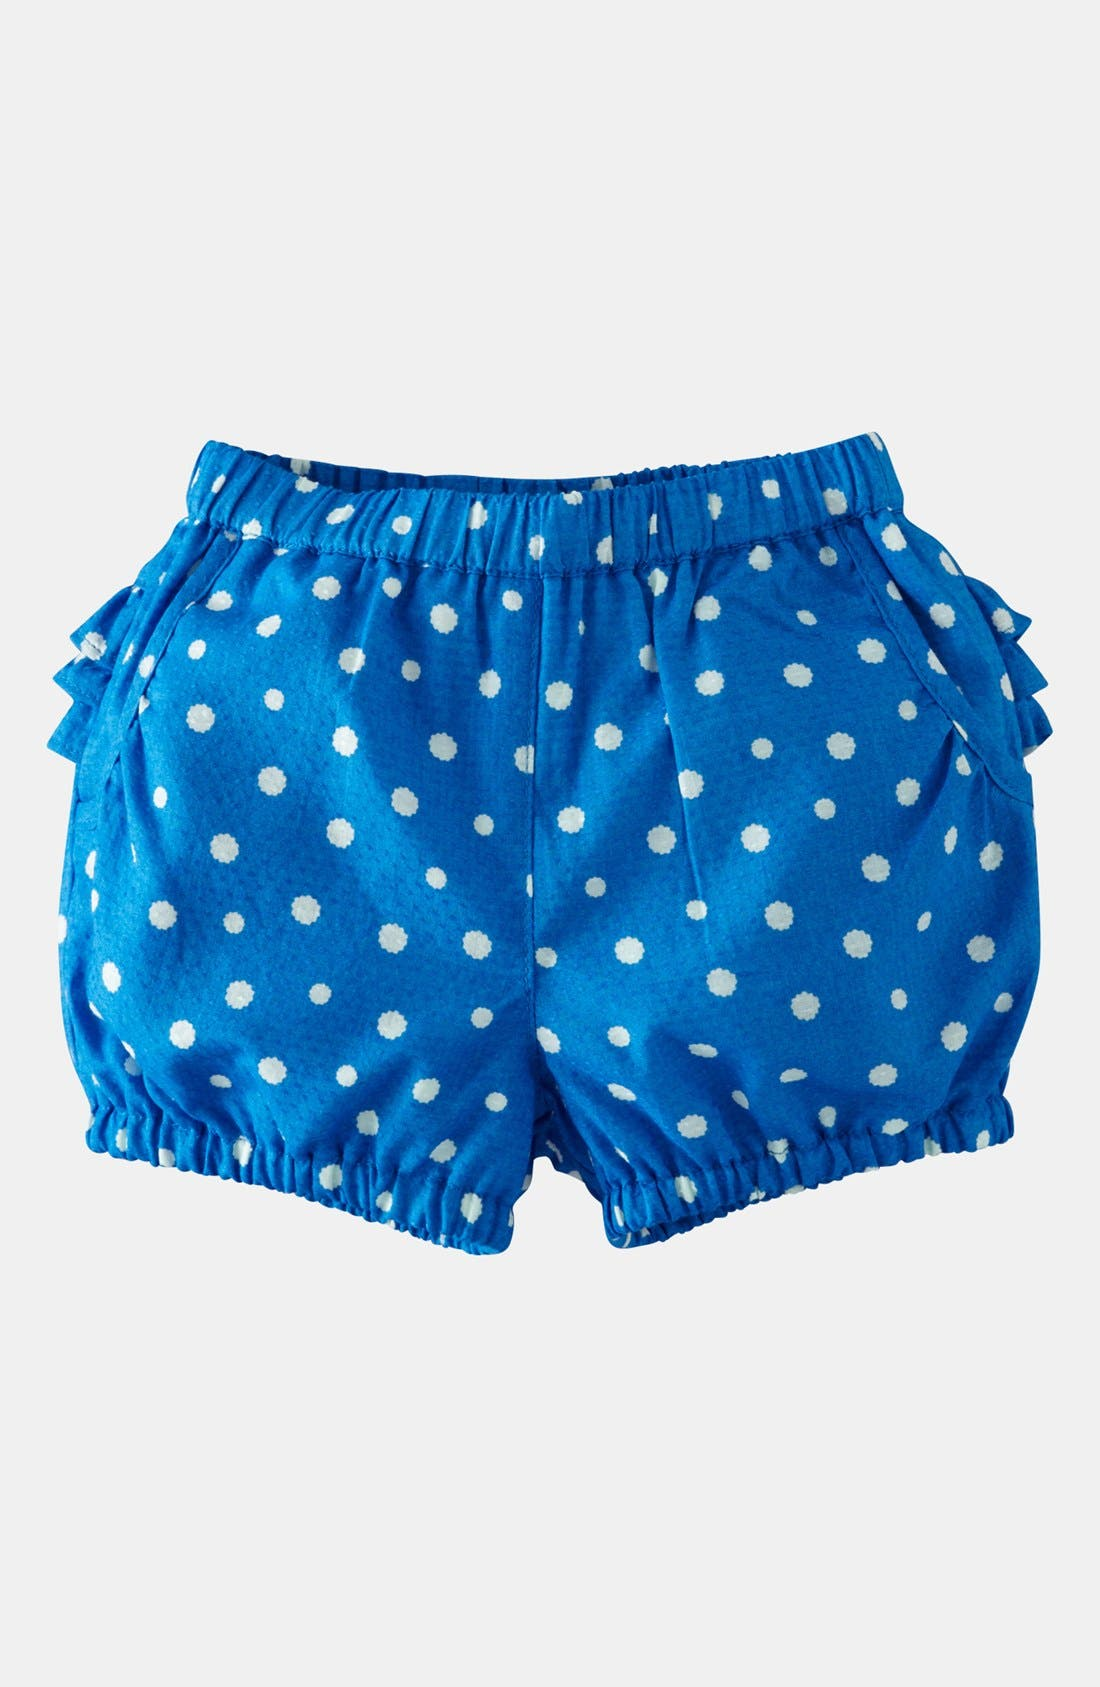 Alternate Image 1 Selected - Mini Boden 'Short Ruffle' Bloomers (Baby)